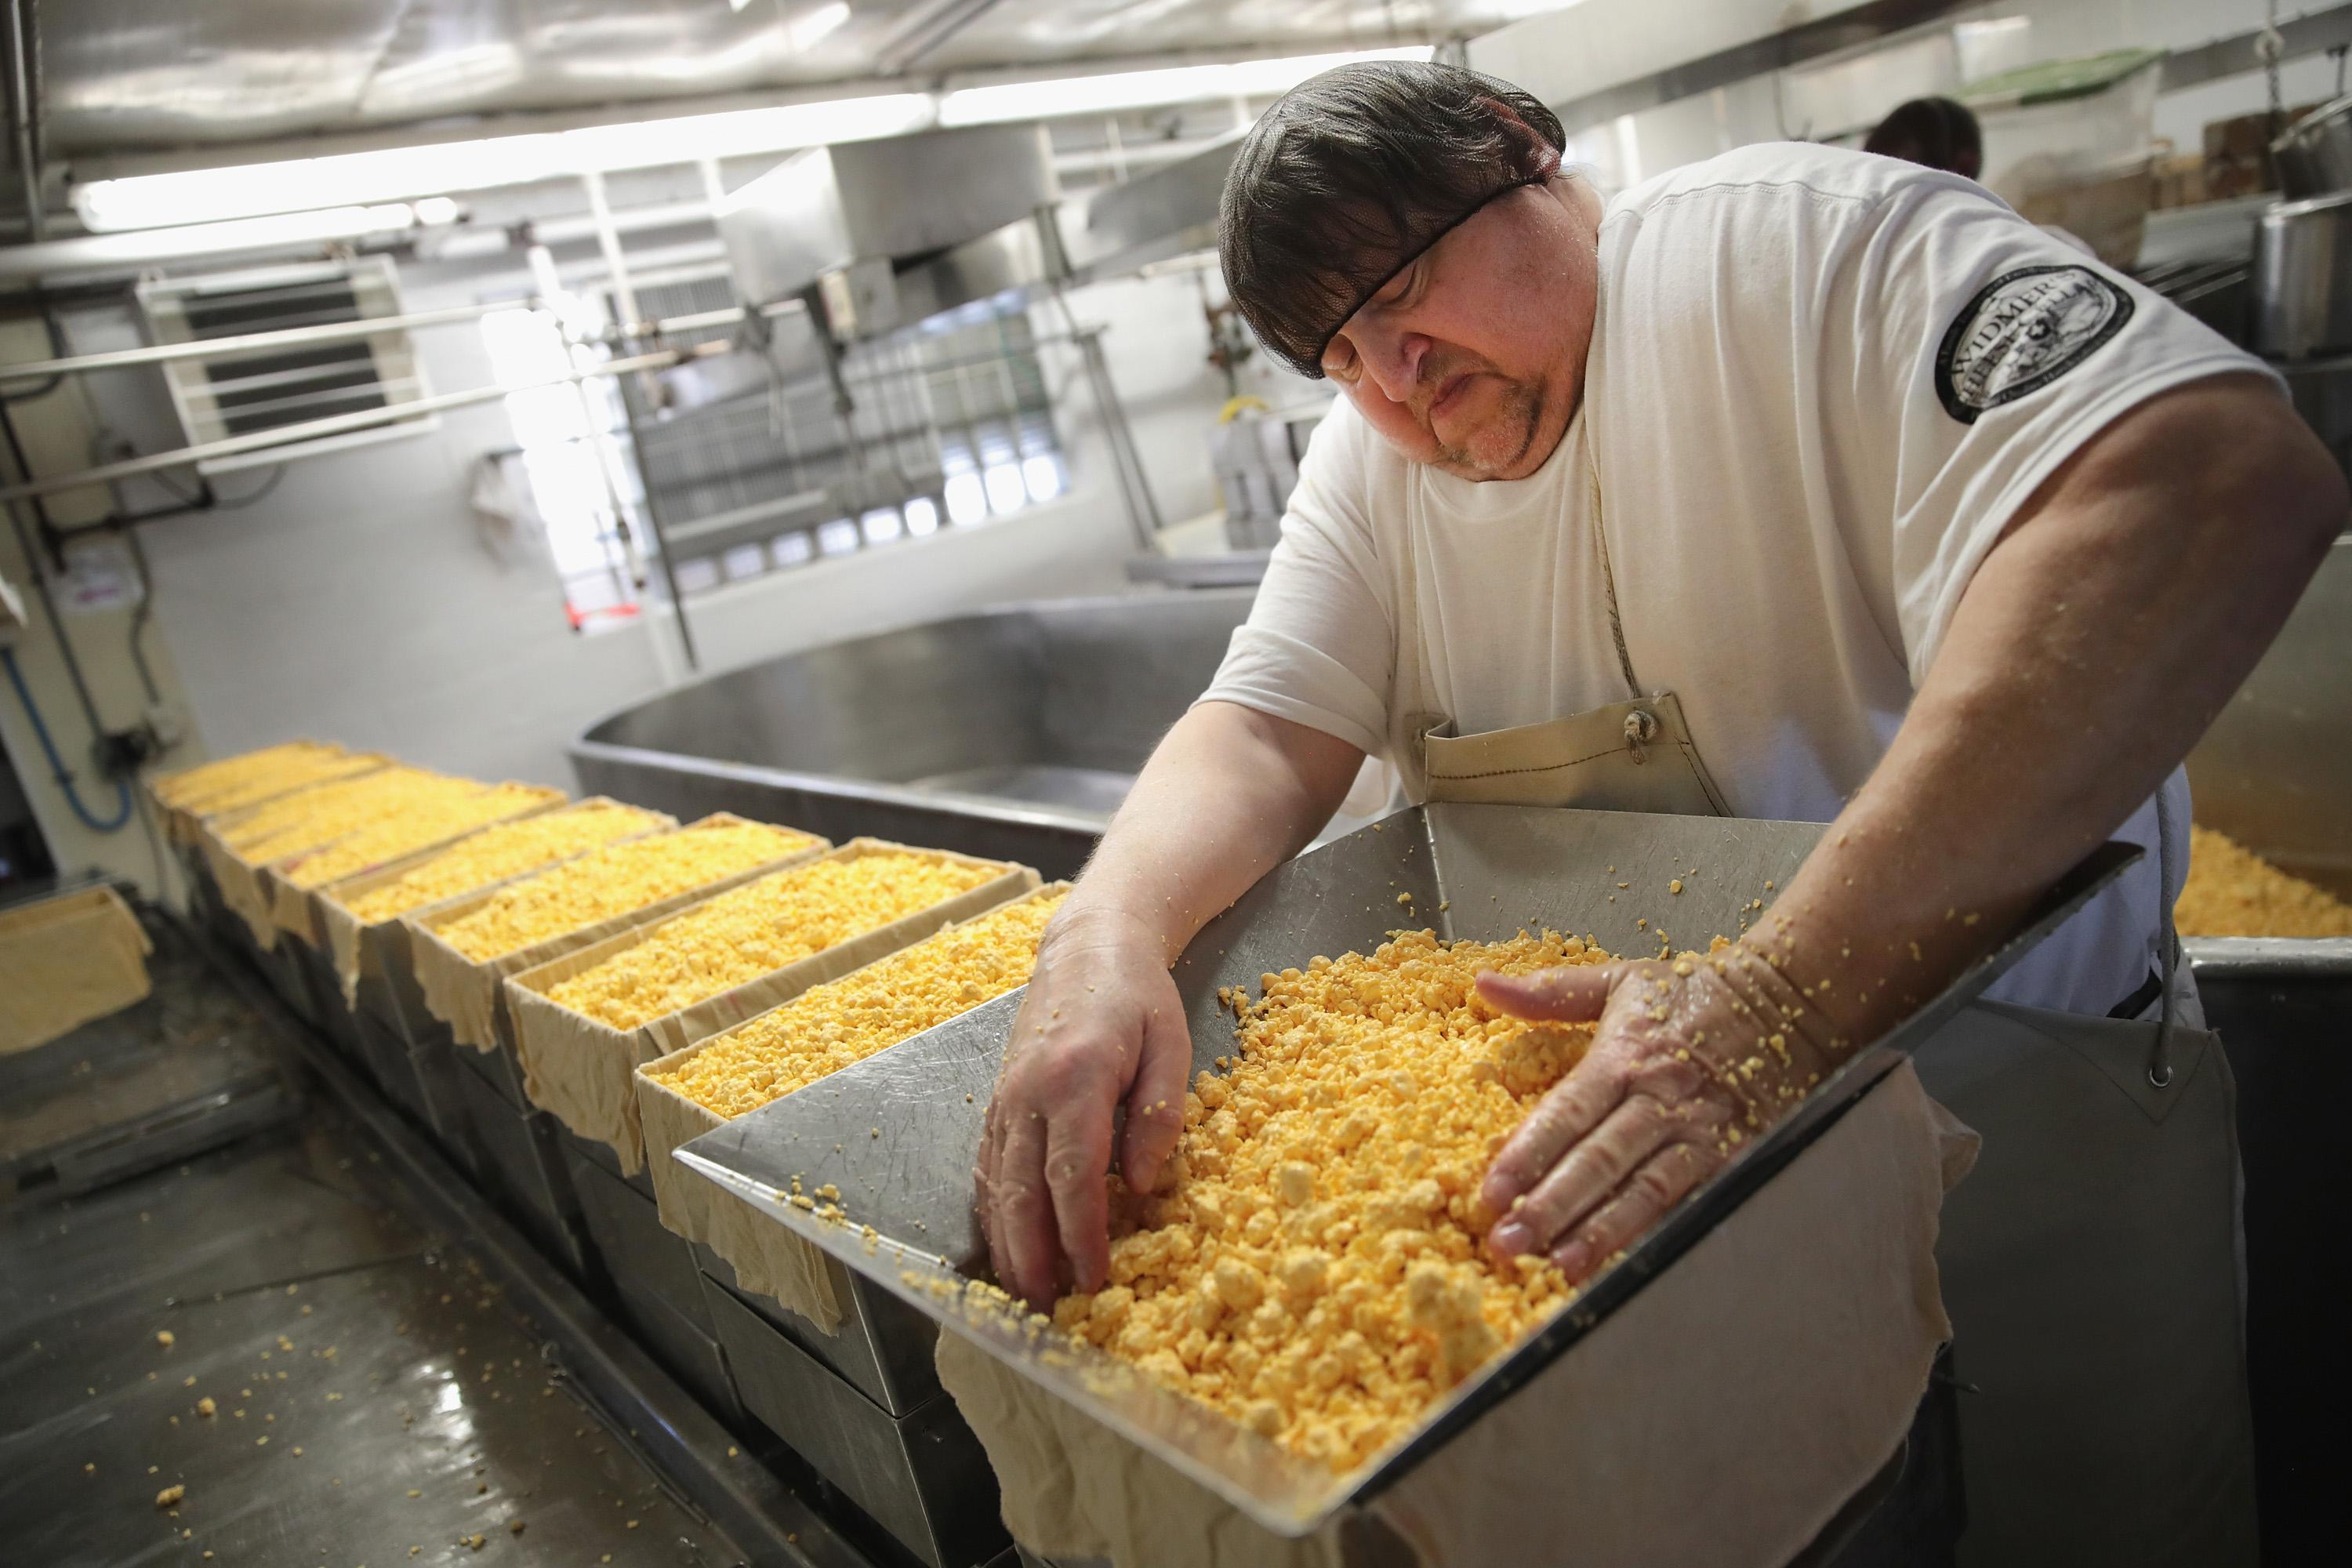 THERESA, WI - JUNE 27:  Lenny Zimmel puts Colby cheese curds into forms to make 40 pounds blocks of cheese at the Widmer's Cheese Cellars on June 27, 2016 in Theresa, Wisconsin. Widmer's is an artisanal cheesemaker that has produced cheese in the same facility for four generations much the same way as it was made by the founder, with traditional open vats and curds being stirred and scooped into molds by hand.  Record dairy production in the United States has produced a record surplus of cheese causing prices to drop. Despite this surplus Widmer's says it continues to see growth as consumers continue to gravitate toward craft-made food products.  (Photo by Scott Olson/Getty Images)